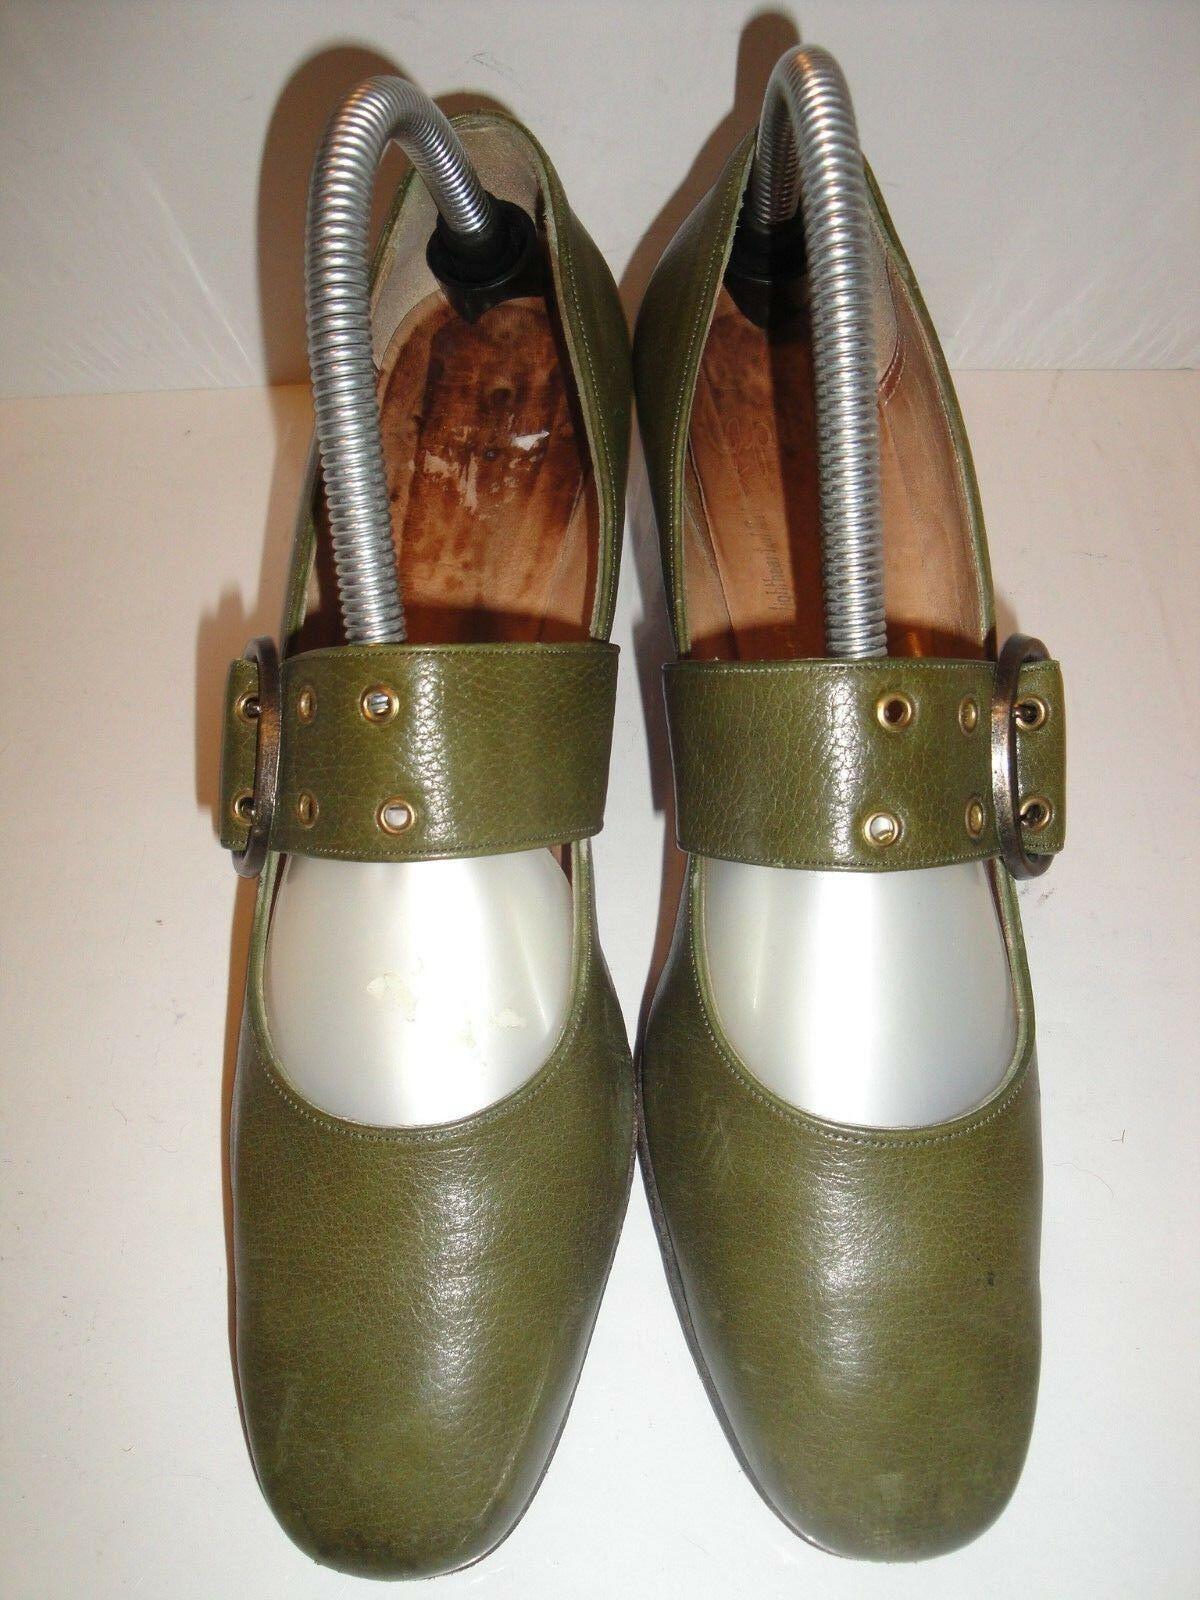 CAPRINI GREEN LEATHER MARY JANE PUMPS WOMENS SHOE SIZE 8.5 M